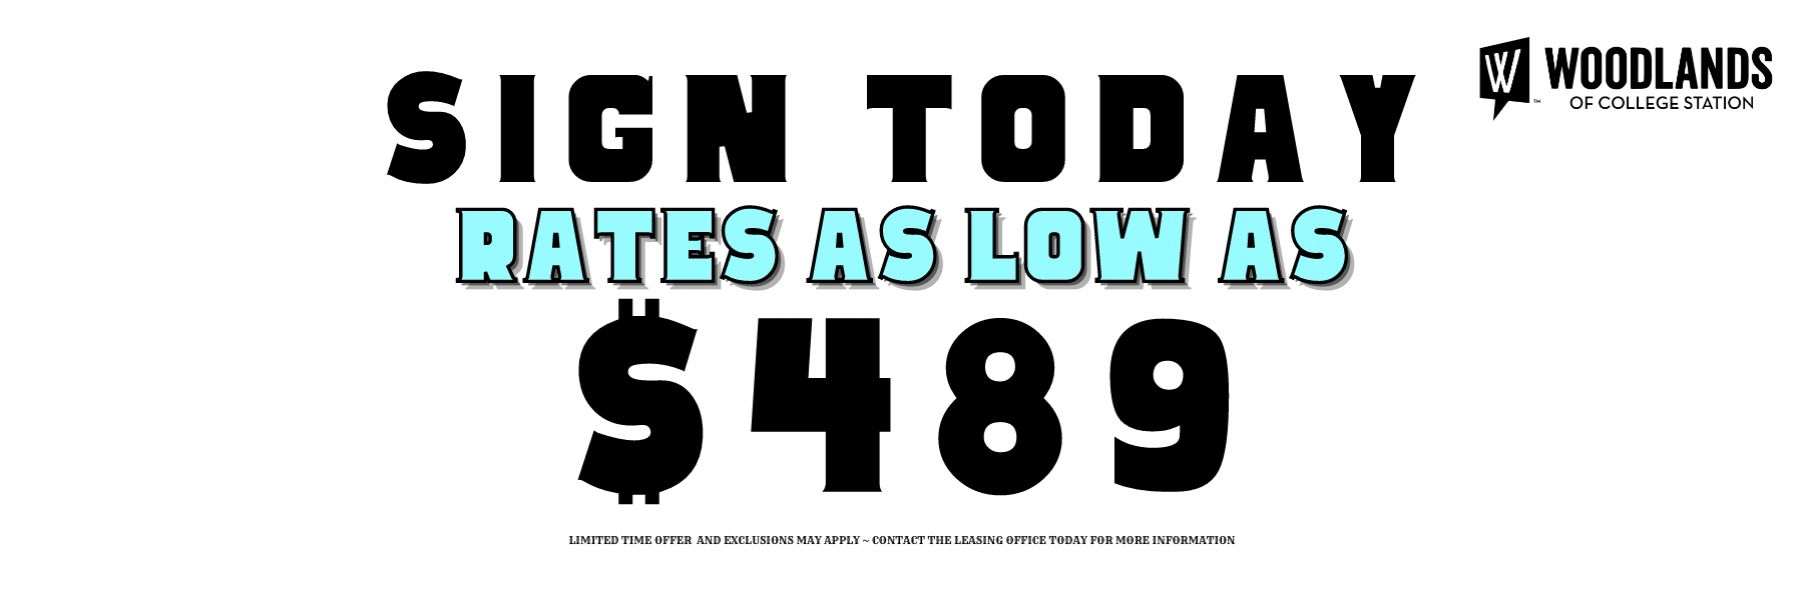 Rates As Low As